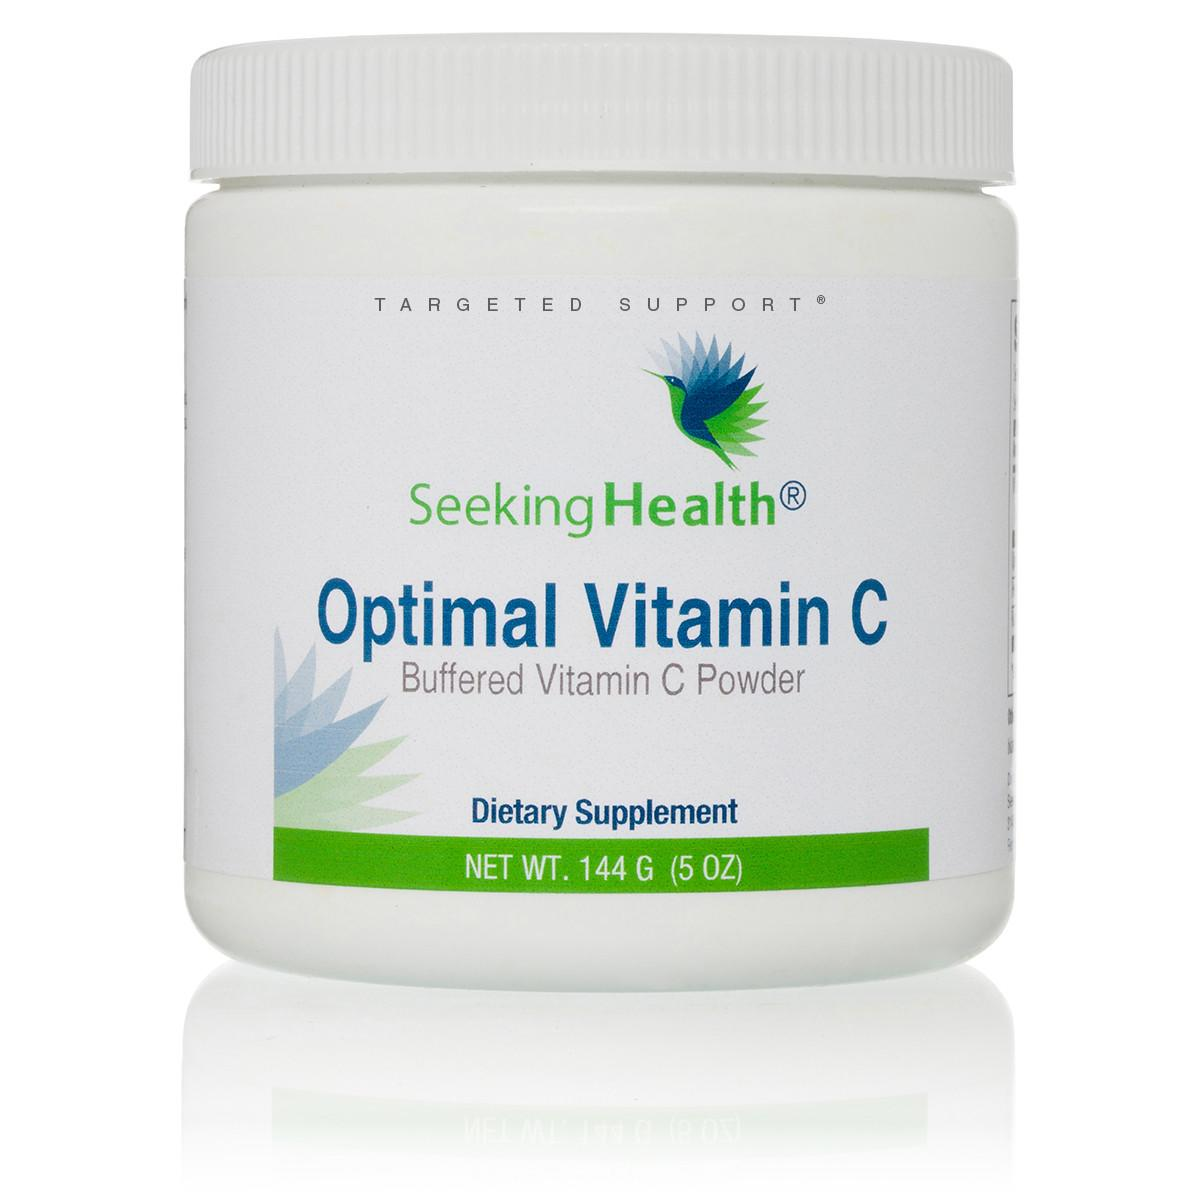 Seeking Health buffered Vitamin C powder